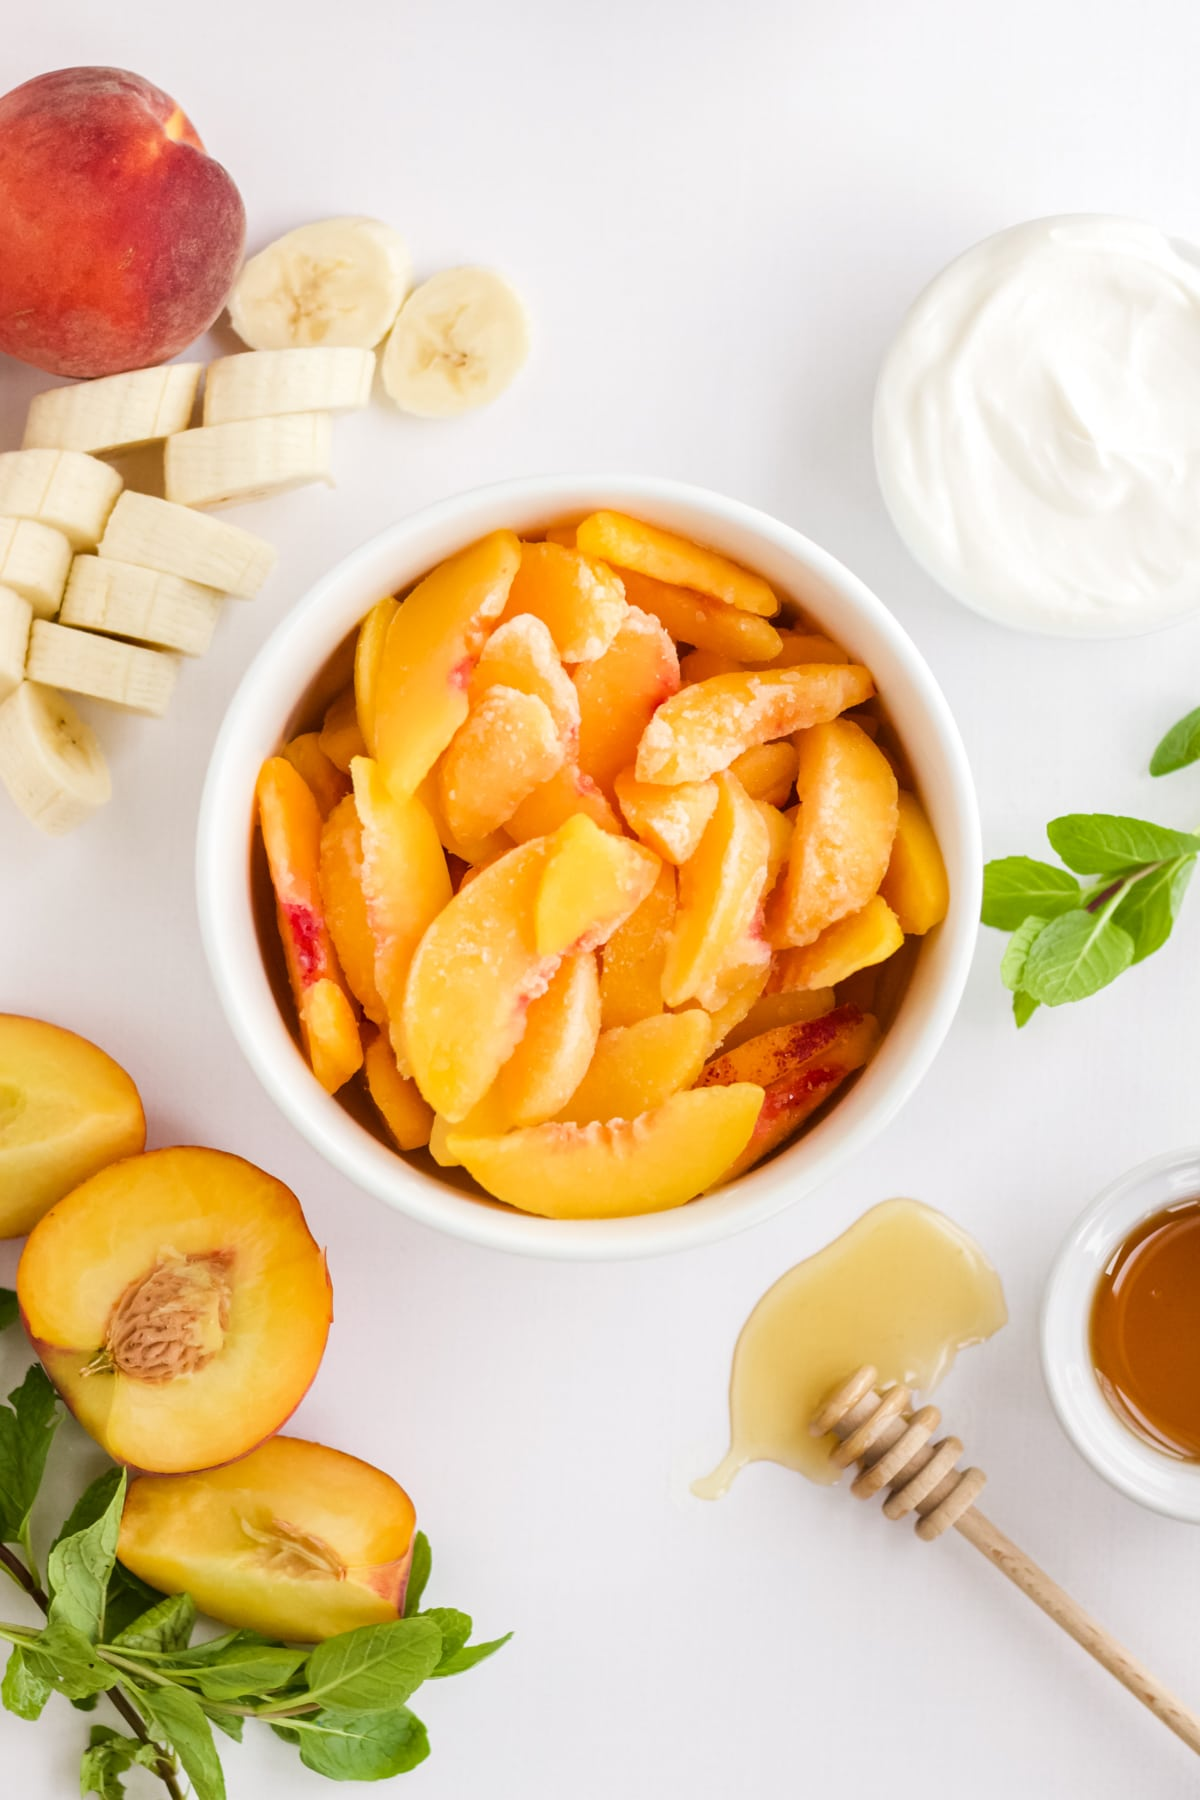 Ingredients to make a peach smoothie